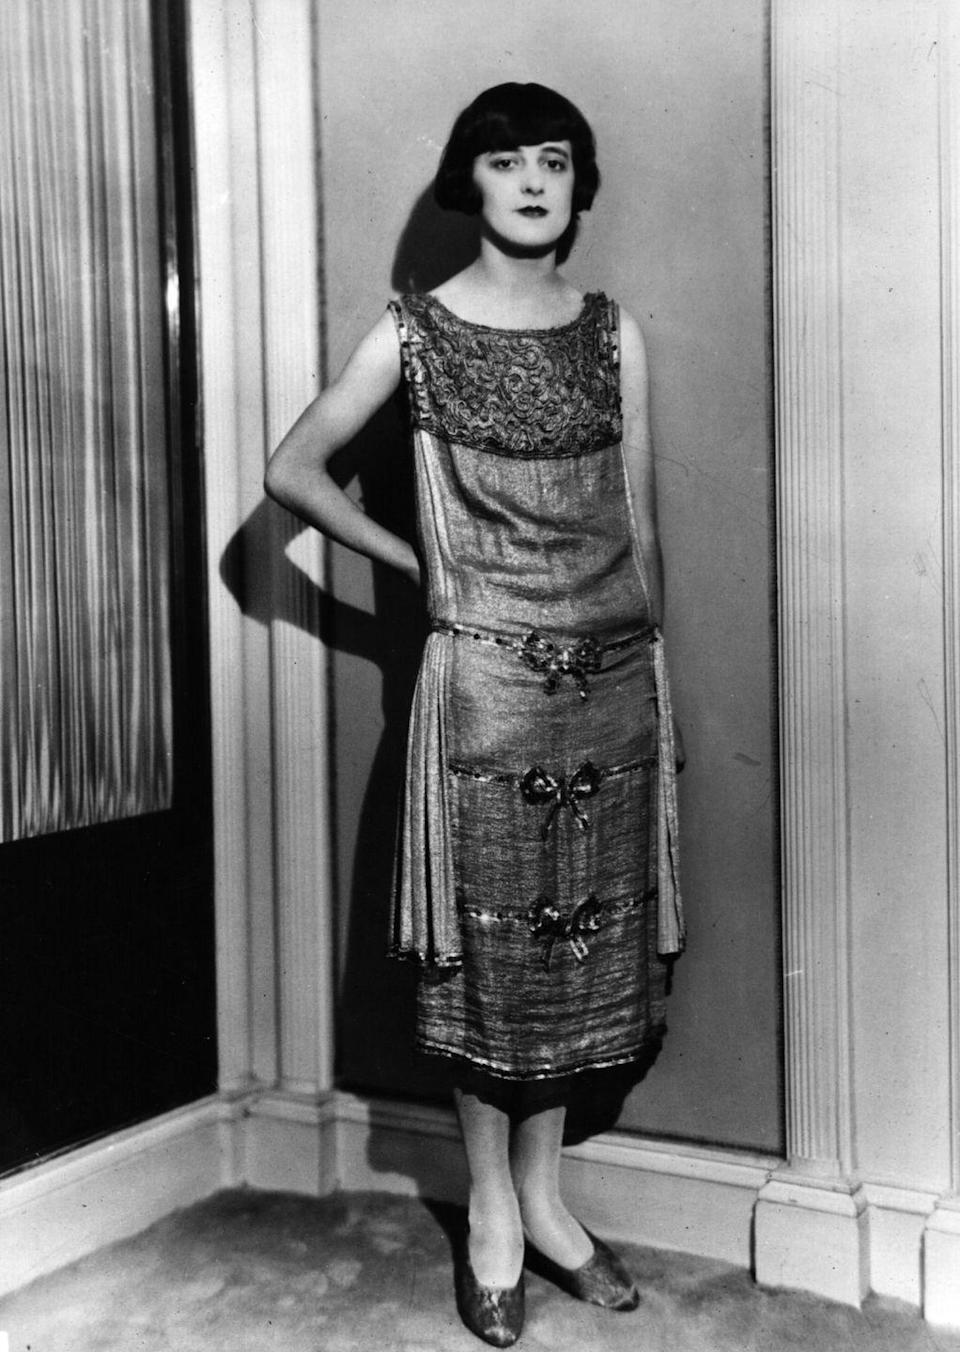 <p>There was an extreme excess of wealth during the '20s, and that meant opulent details. Fringe, paneling, and embroidery were all typical of a glamorous dress during this time. </p>